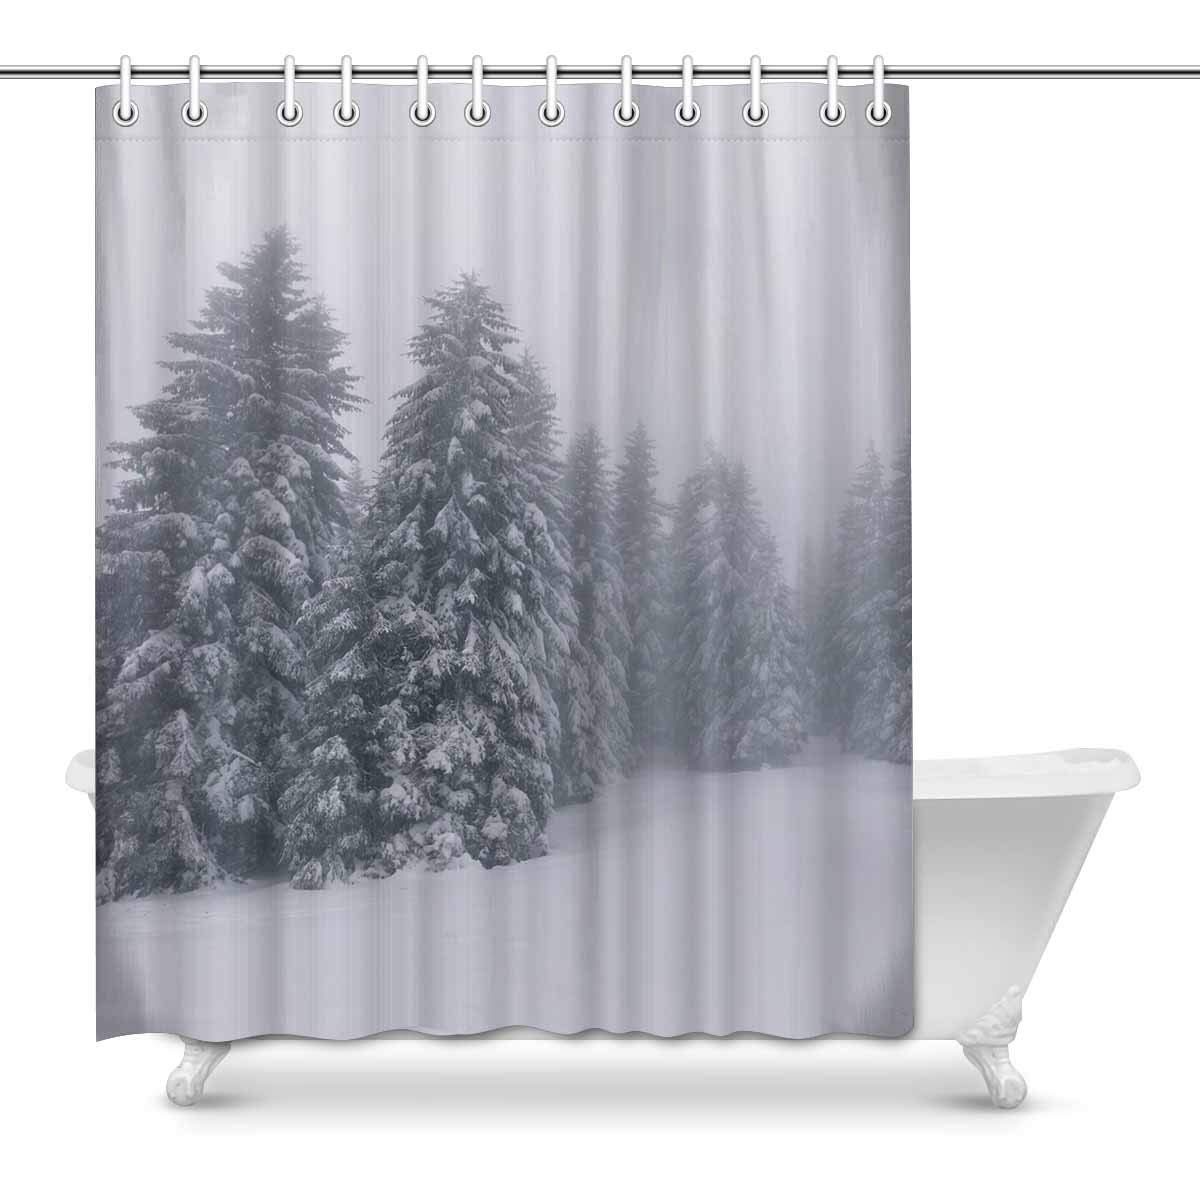 Gckg Vintage Winter Landscape Shower Curtain Froggy Forest Polyester Fabric Bathroom Sets 60x72 Inches